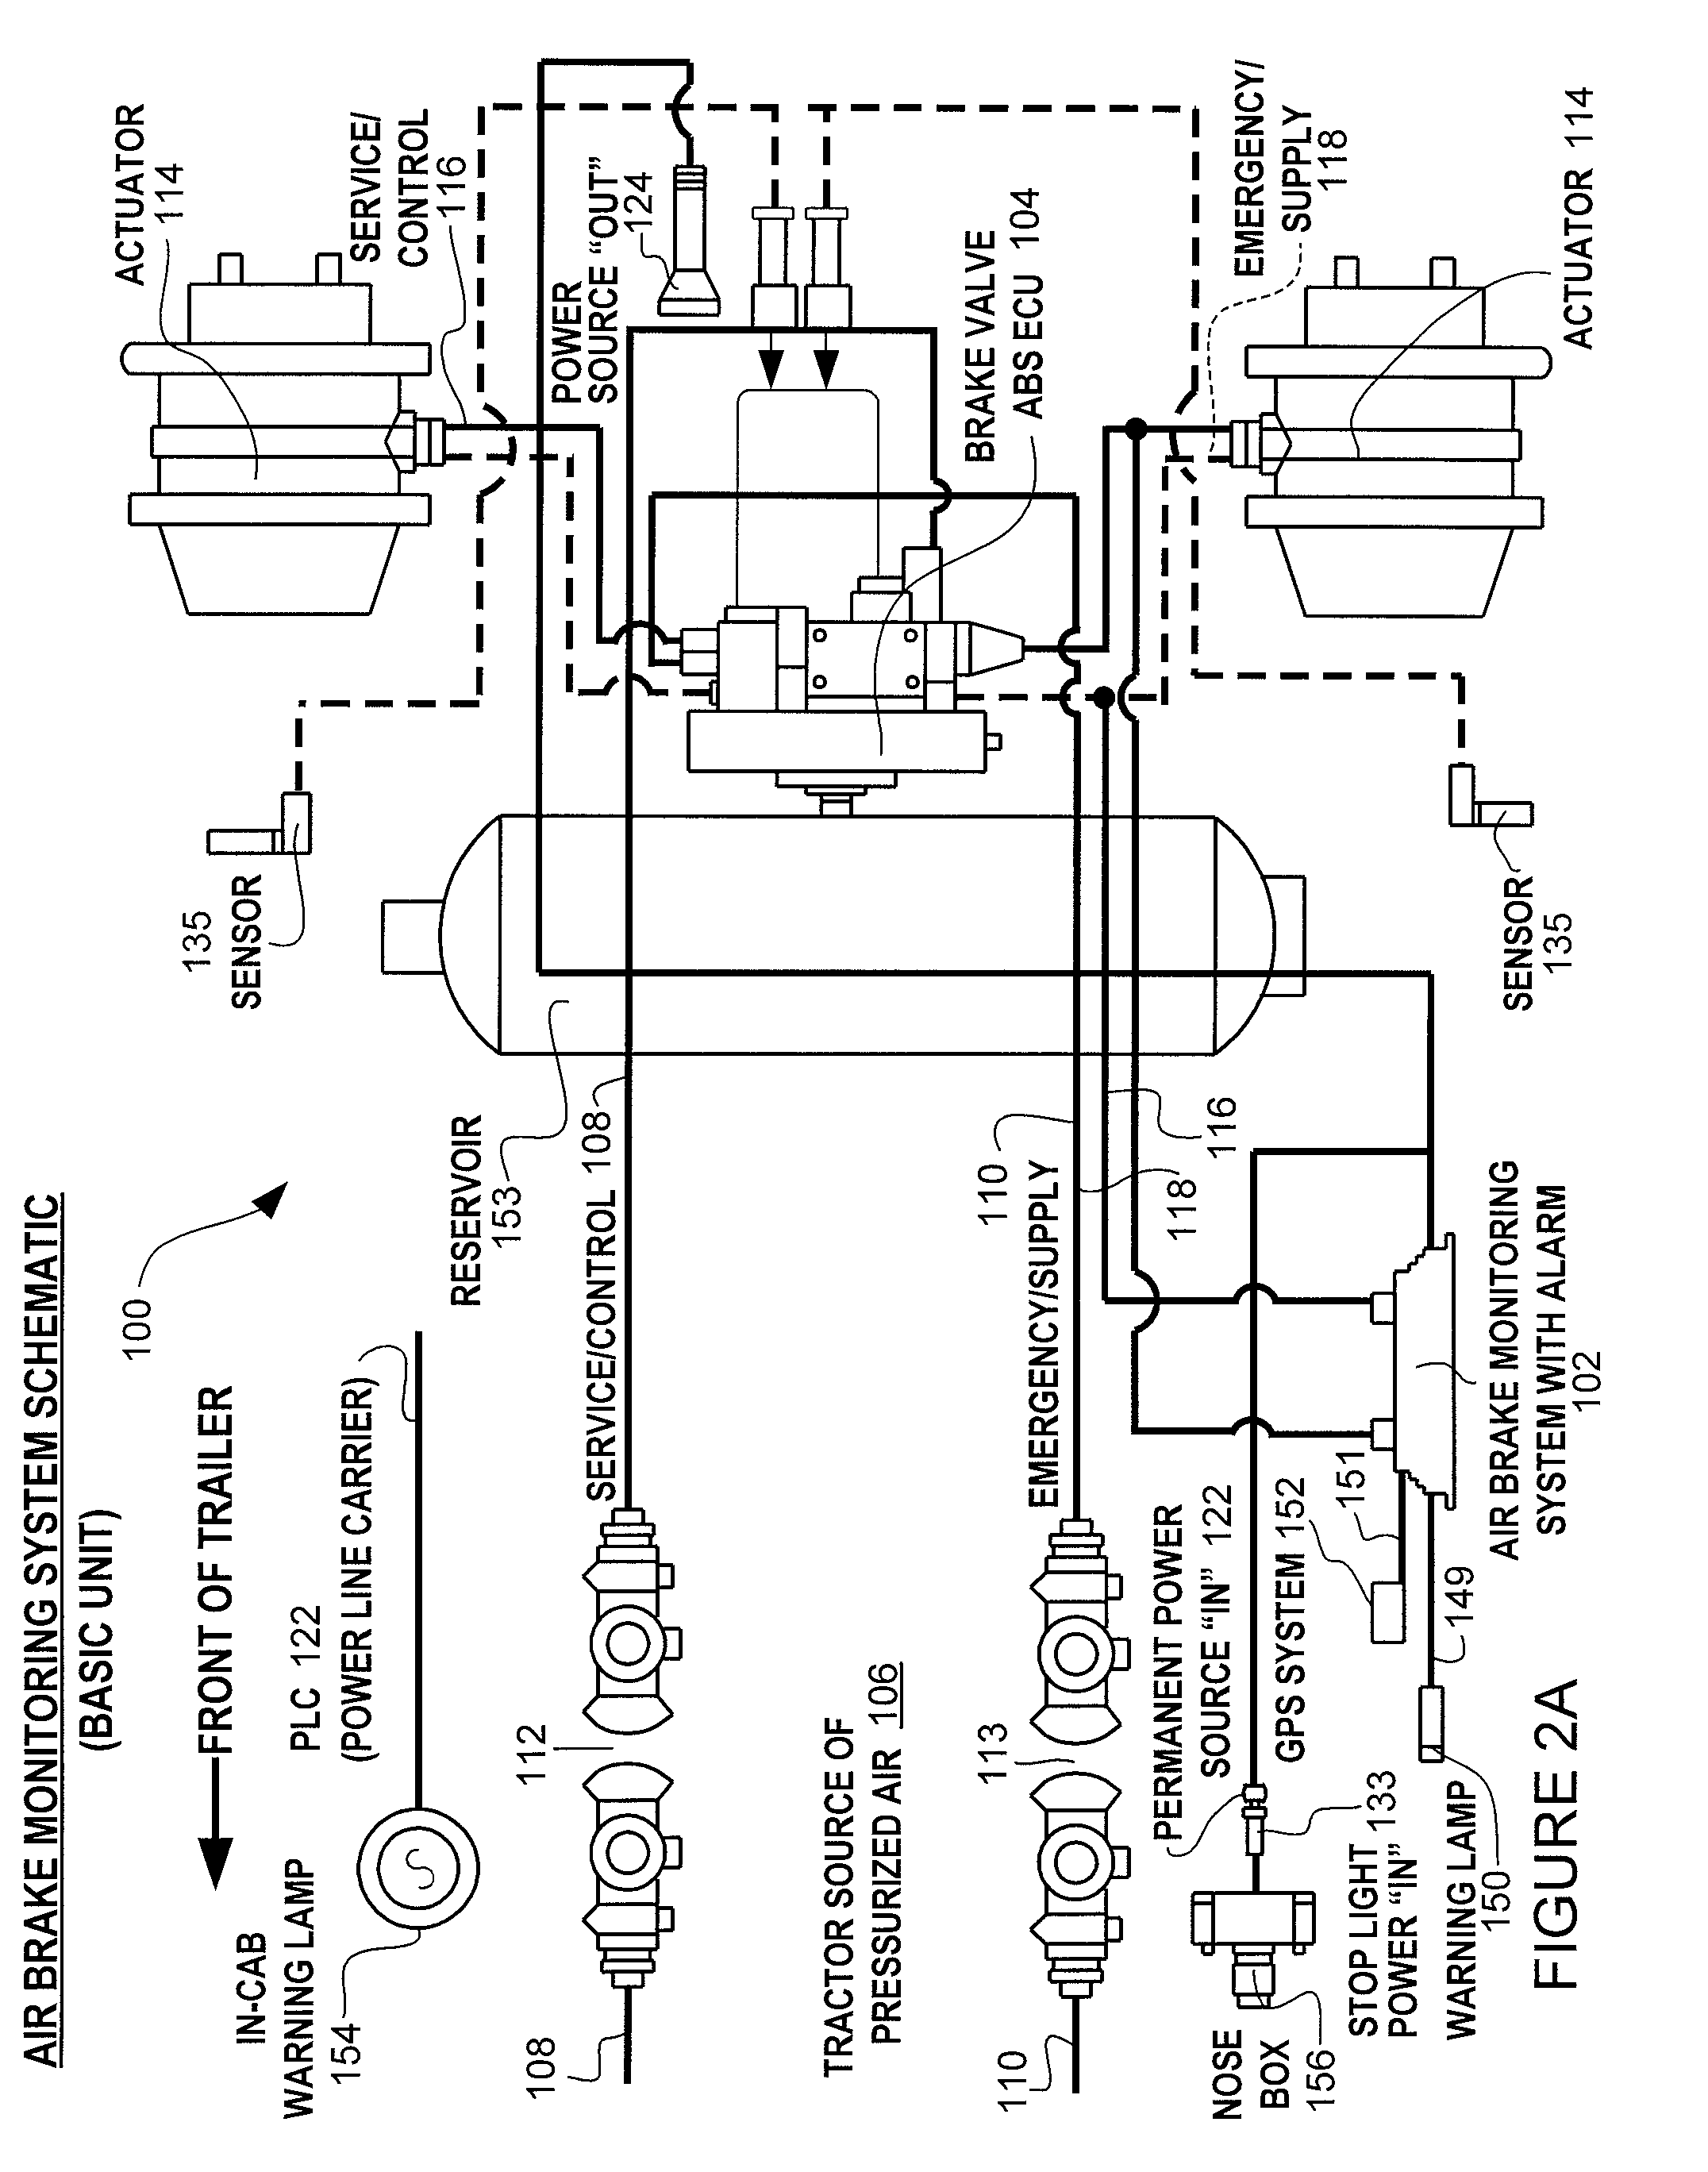 Haldex Abs Wiring Diagram Wiring Diagram Schemes Meritor Trailer ABS Wiring  Diagram Abs Trailer Wiring Diagrams